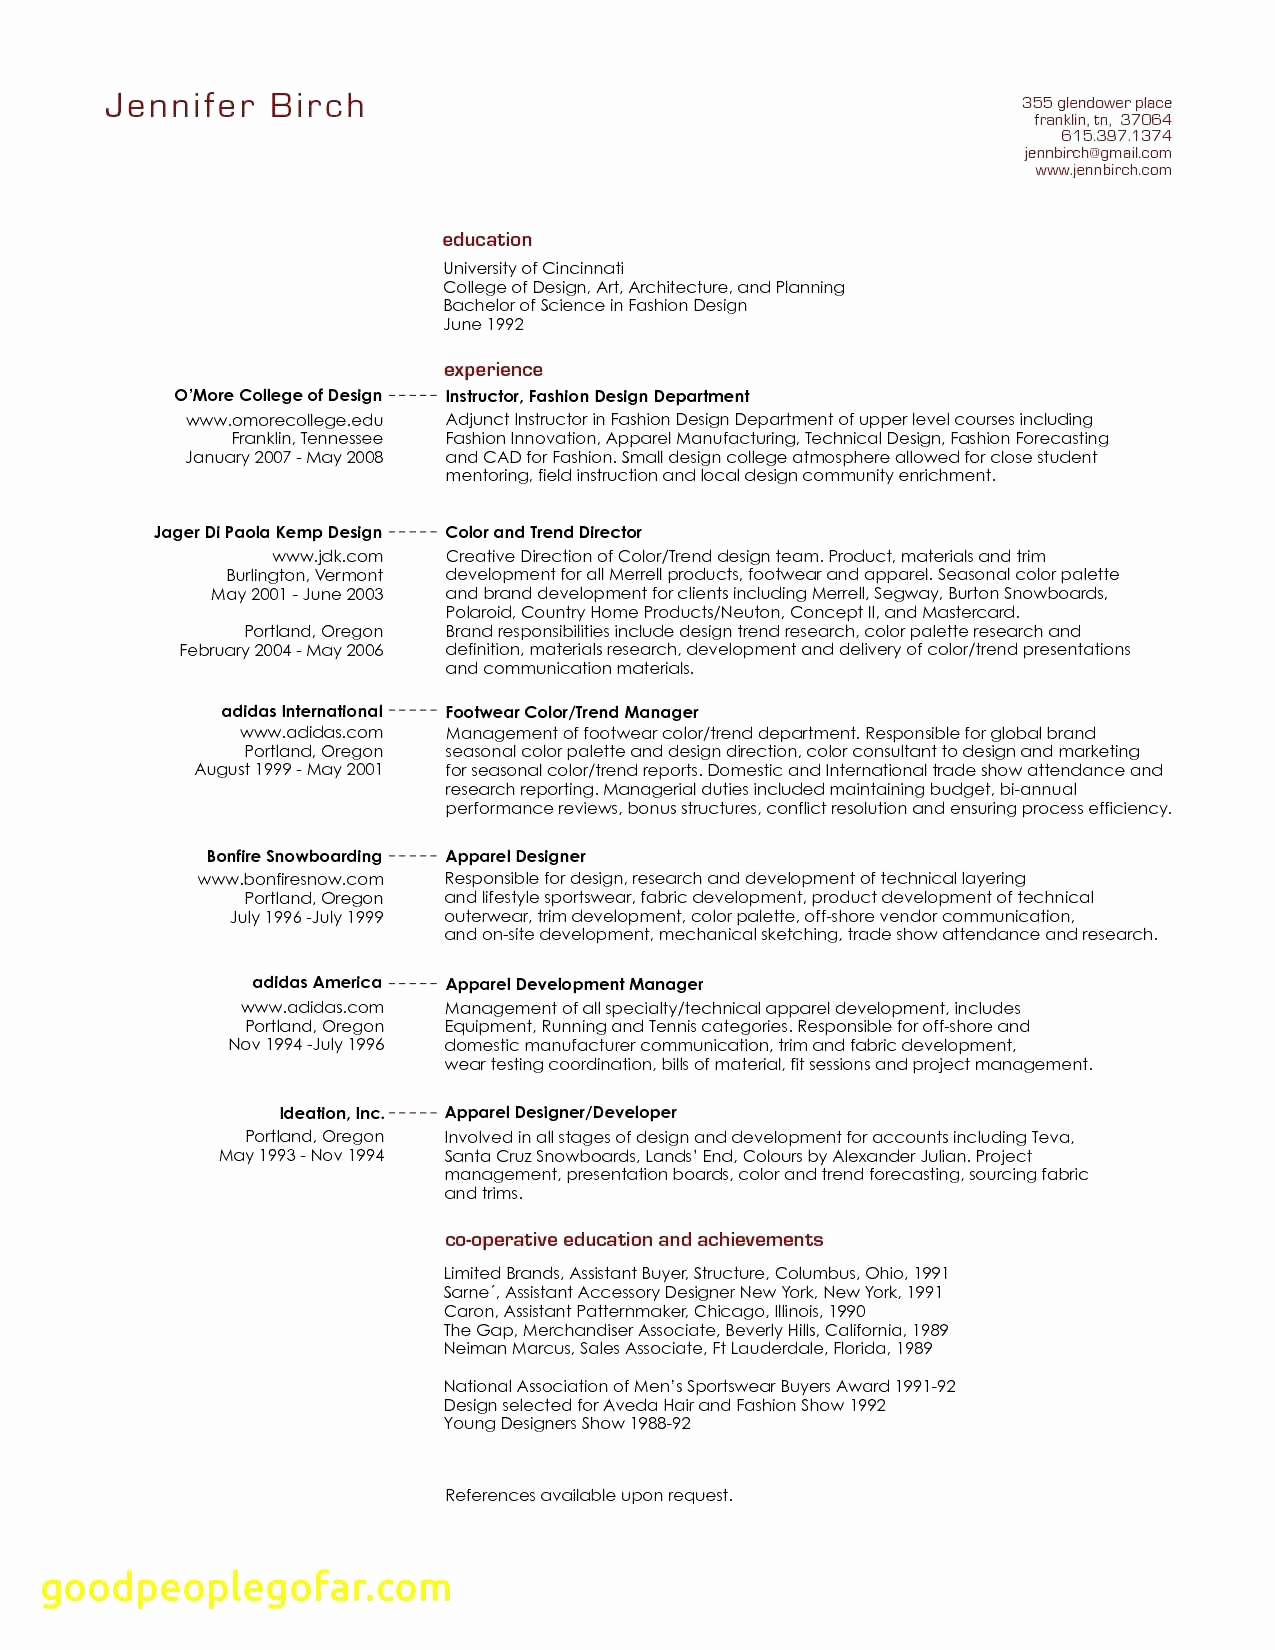 Janitor Resume Examples - Resume with Little Experience Janitor Resume Best Resume for